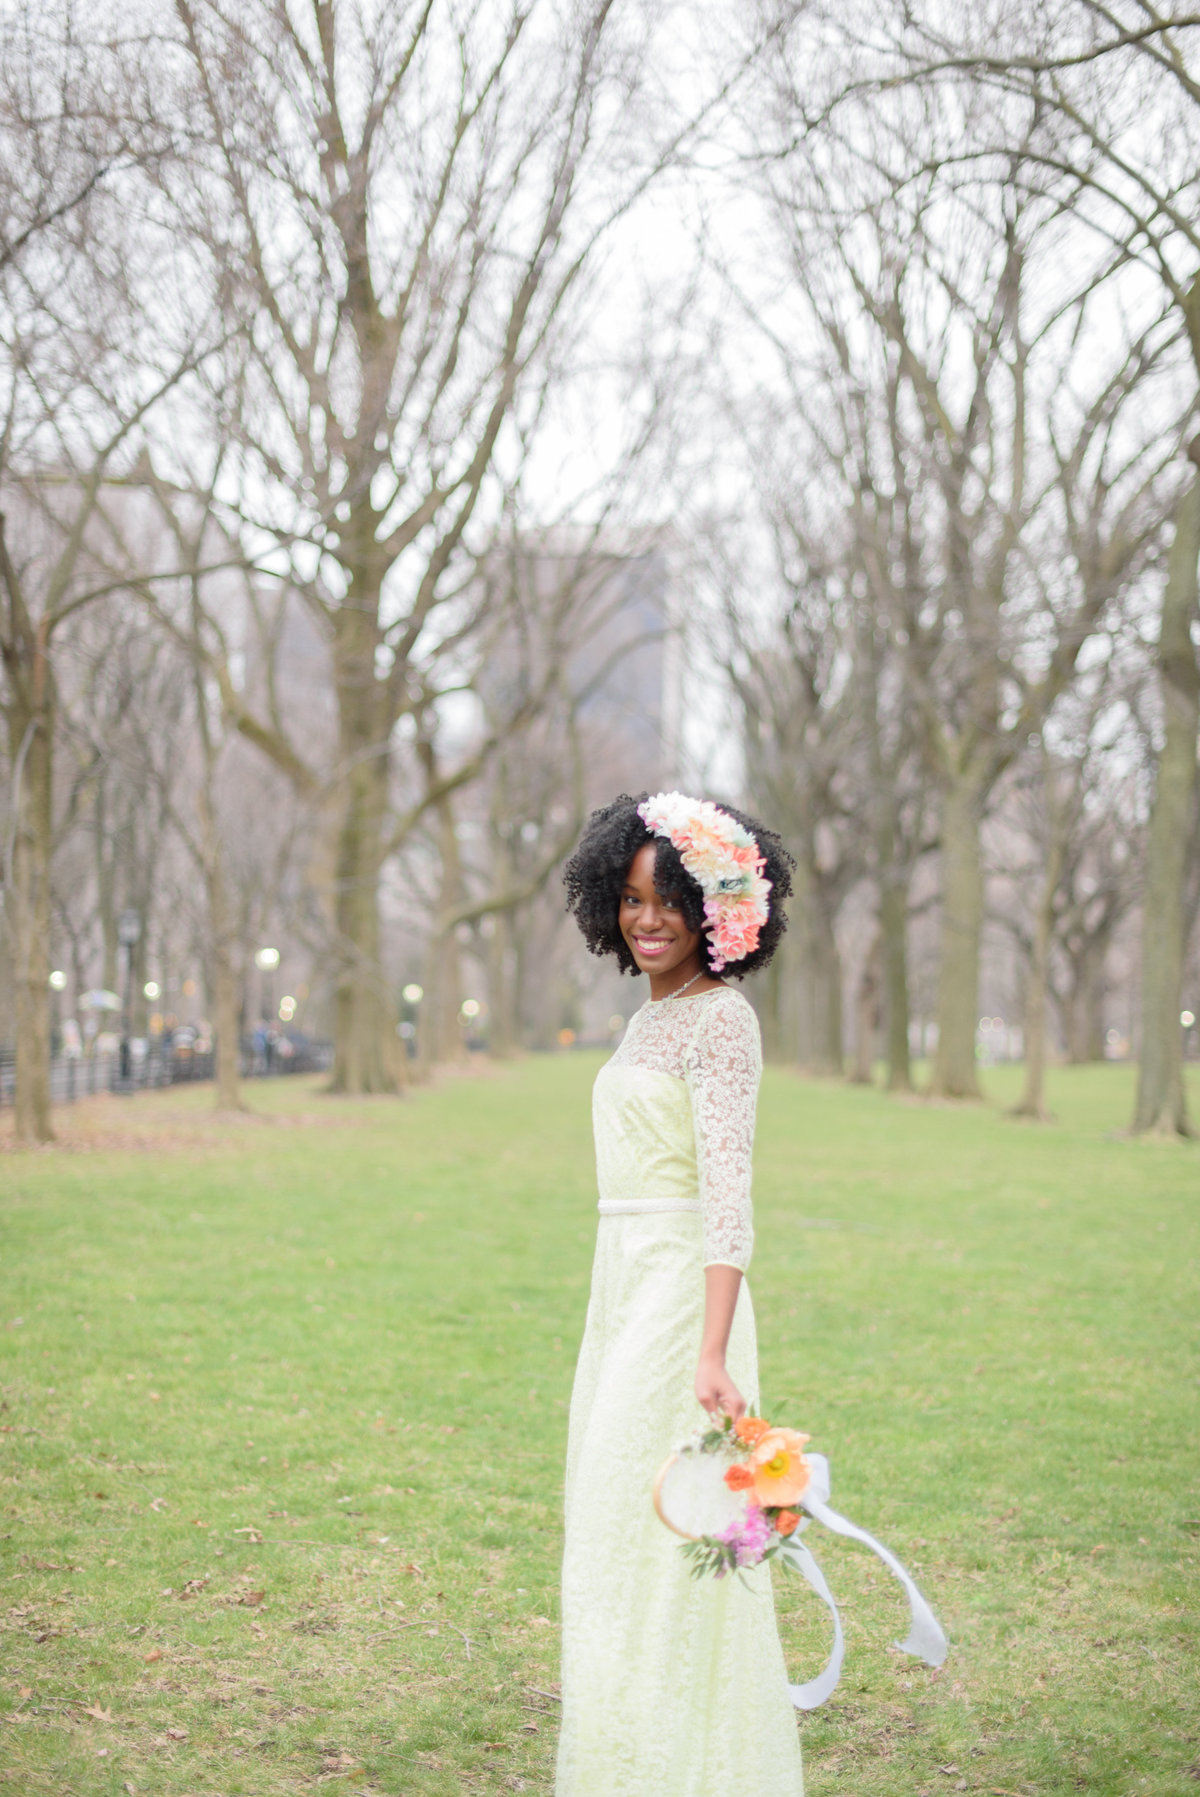 Central Park Wedding Photographer | Bridal Style Inspiration 18